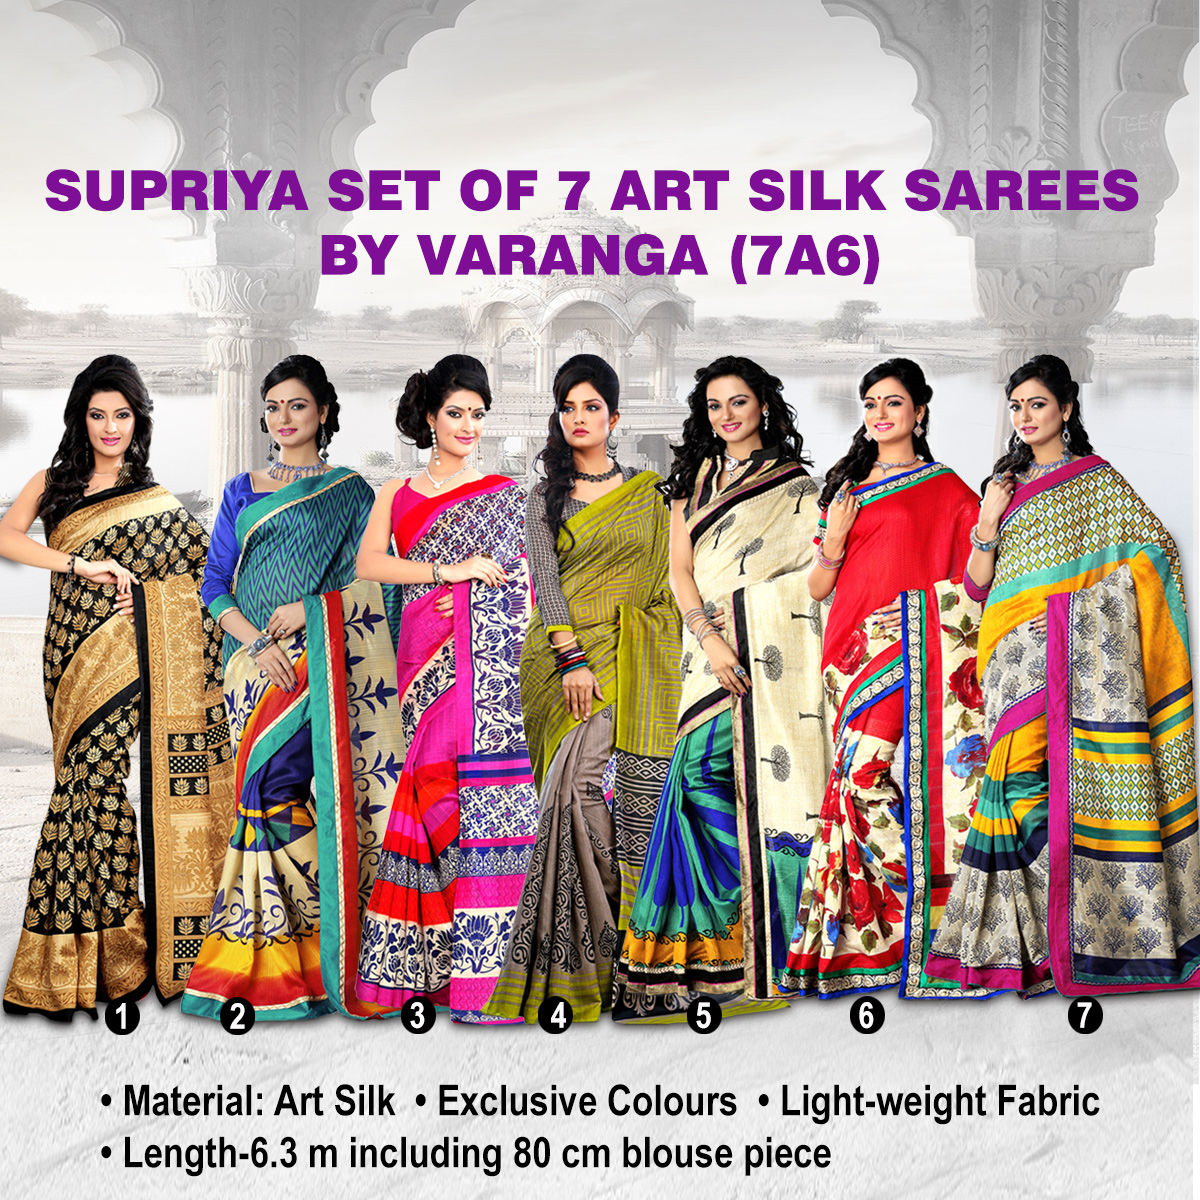 bcbbb5d71 Buy Supriya Set of 7 Art Silk Sarees by Varanga (7A6) Online at Best Price  in India on Naaptol.com